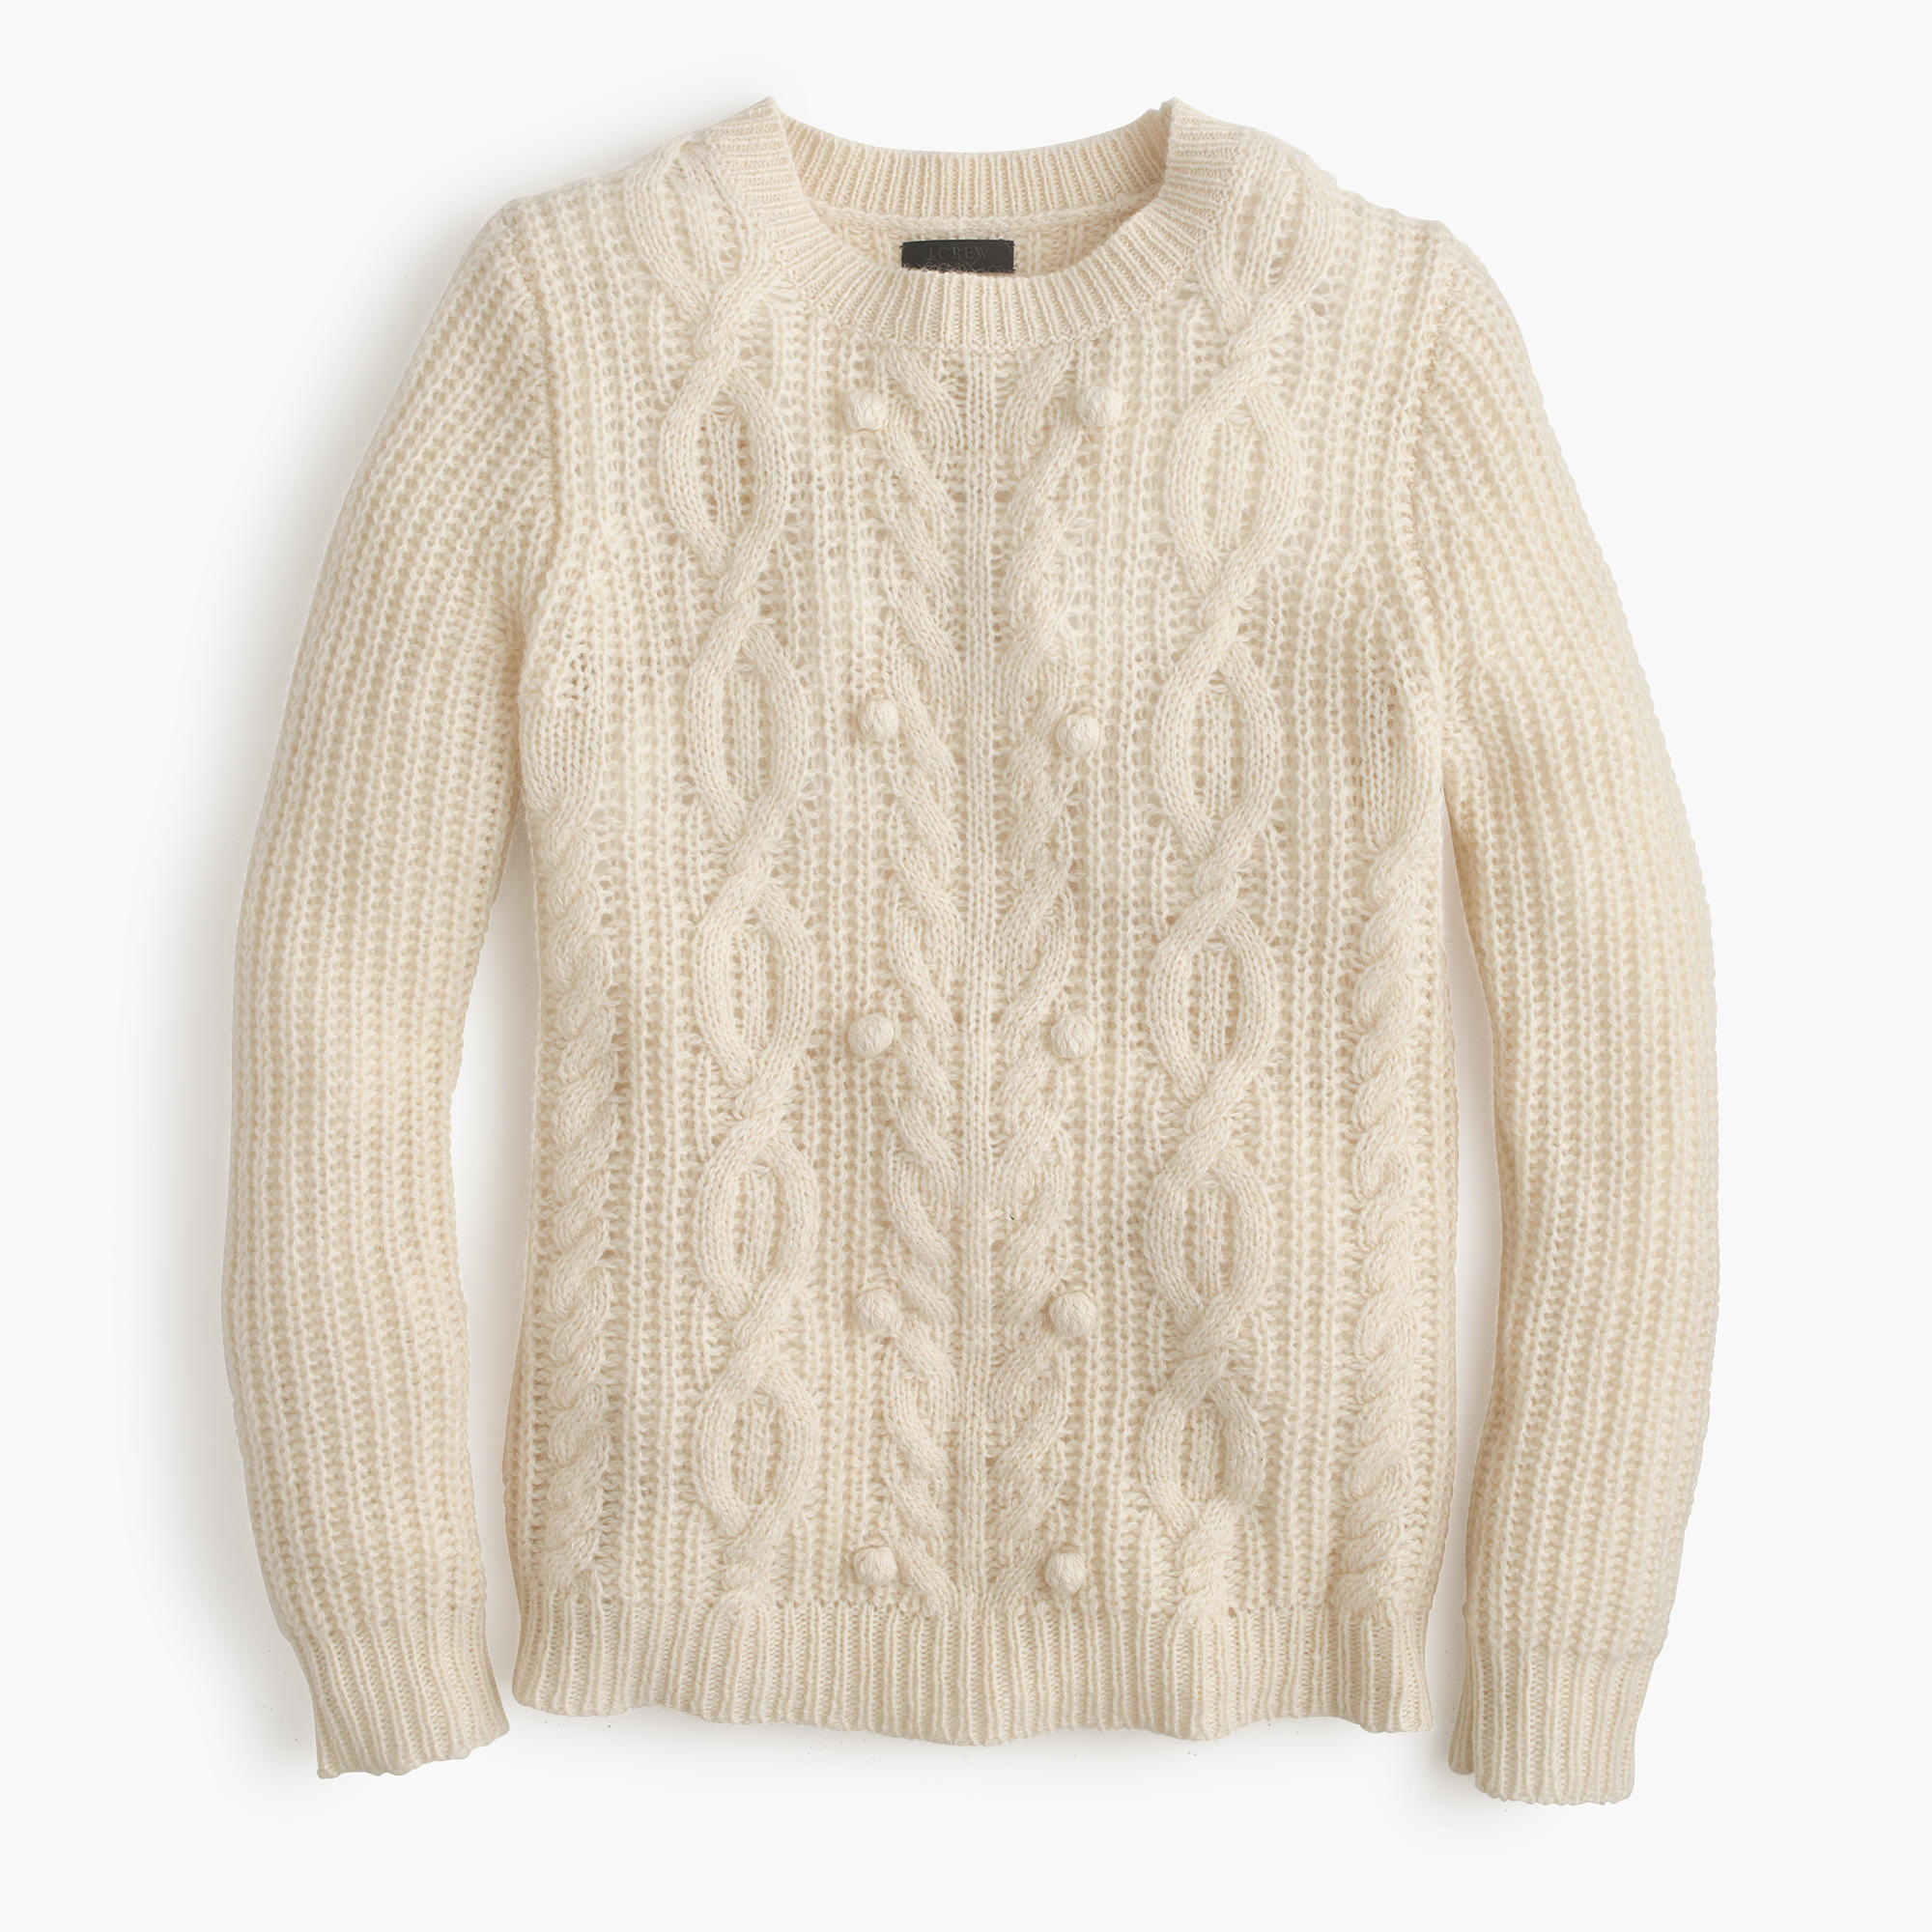 J.crew Italian Cashmere Cable Sweater With Pom-poms in Natural | Lyst